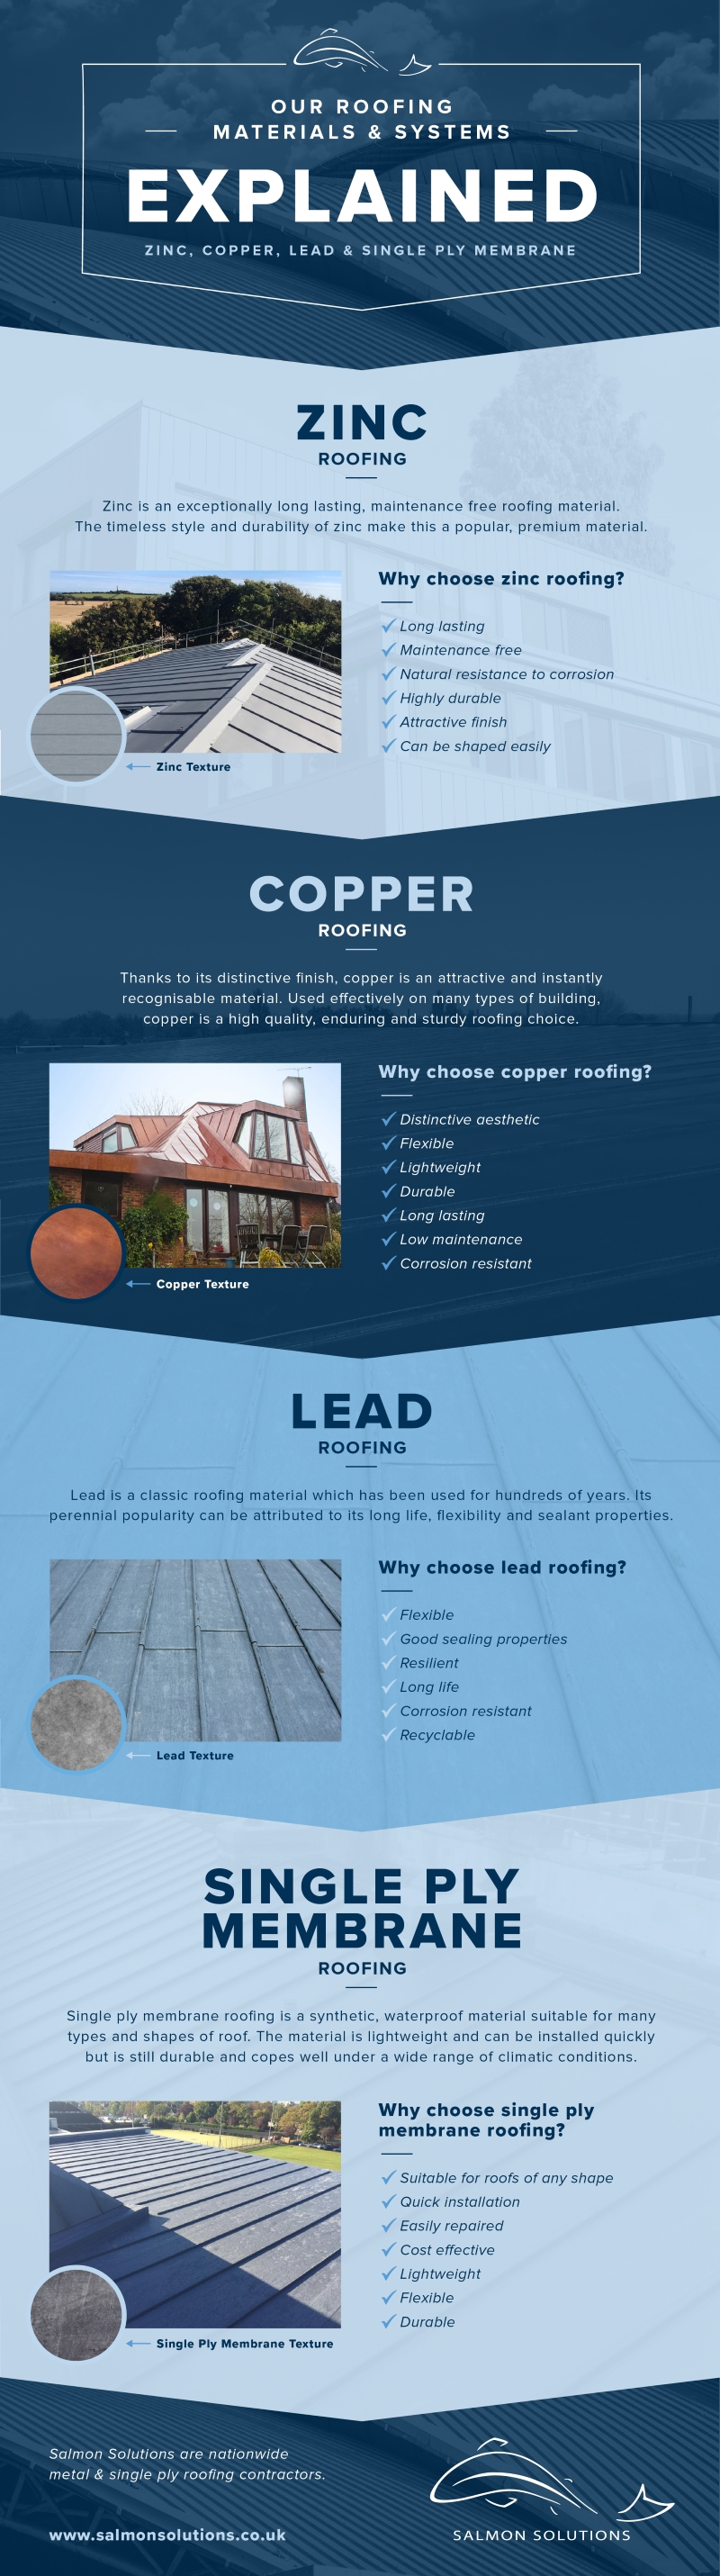 zinc, copper, lead and single ply membrane roofing explained infographic